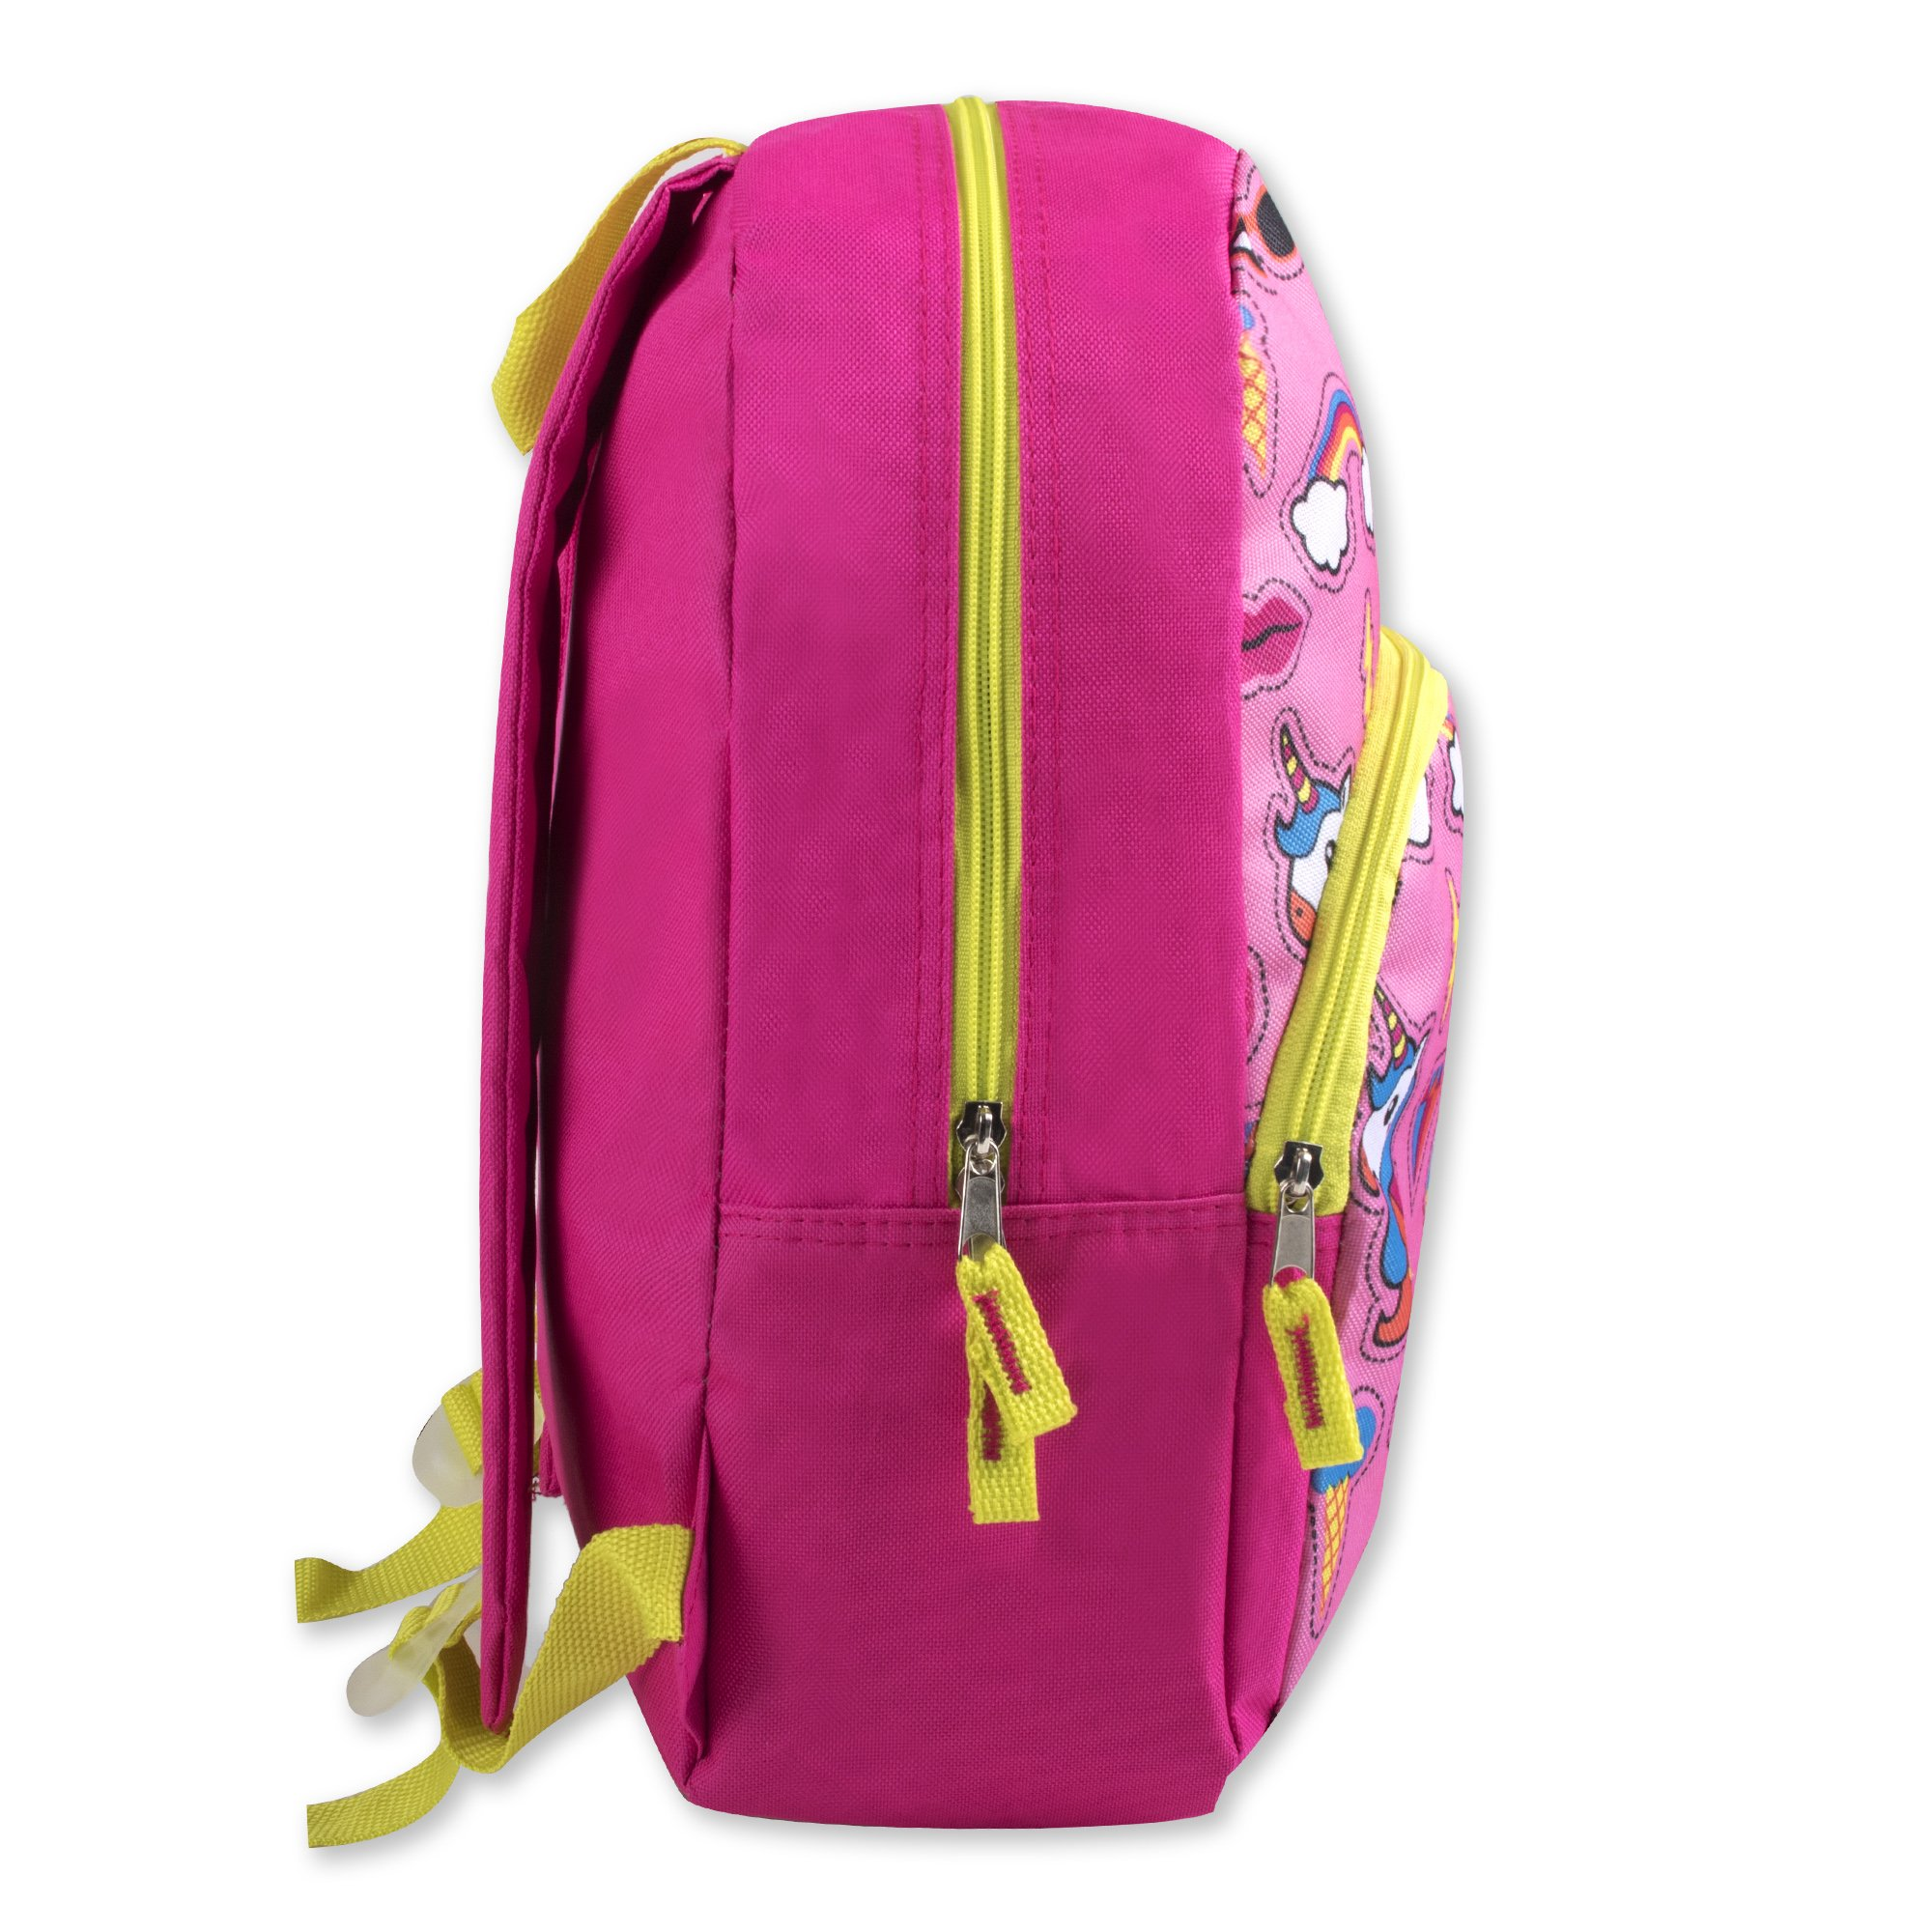 Trail maker Character Backpack (15'') with Fun Fashionable Design for Boys & Girls (Unicorn Adventure) by Trail maker (Image #3)